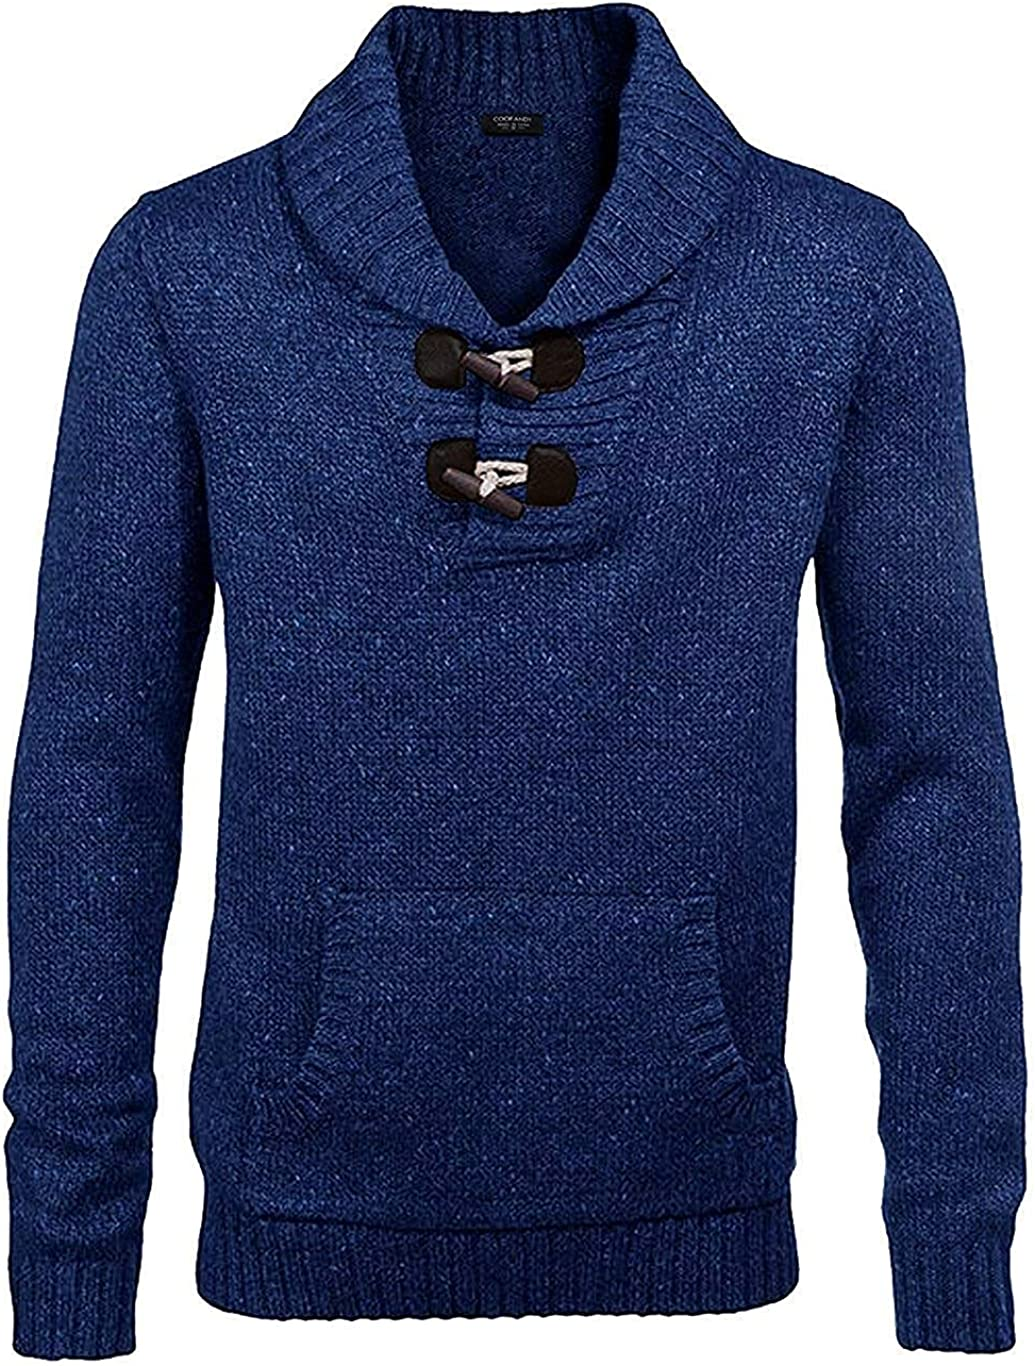 COOFANDY Men's Shawl Collar Pullover Sweater Relaxed Fit Casual Cotton Cable Knit Sweaters with Pockets